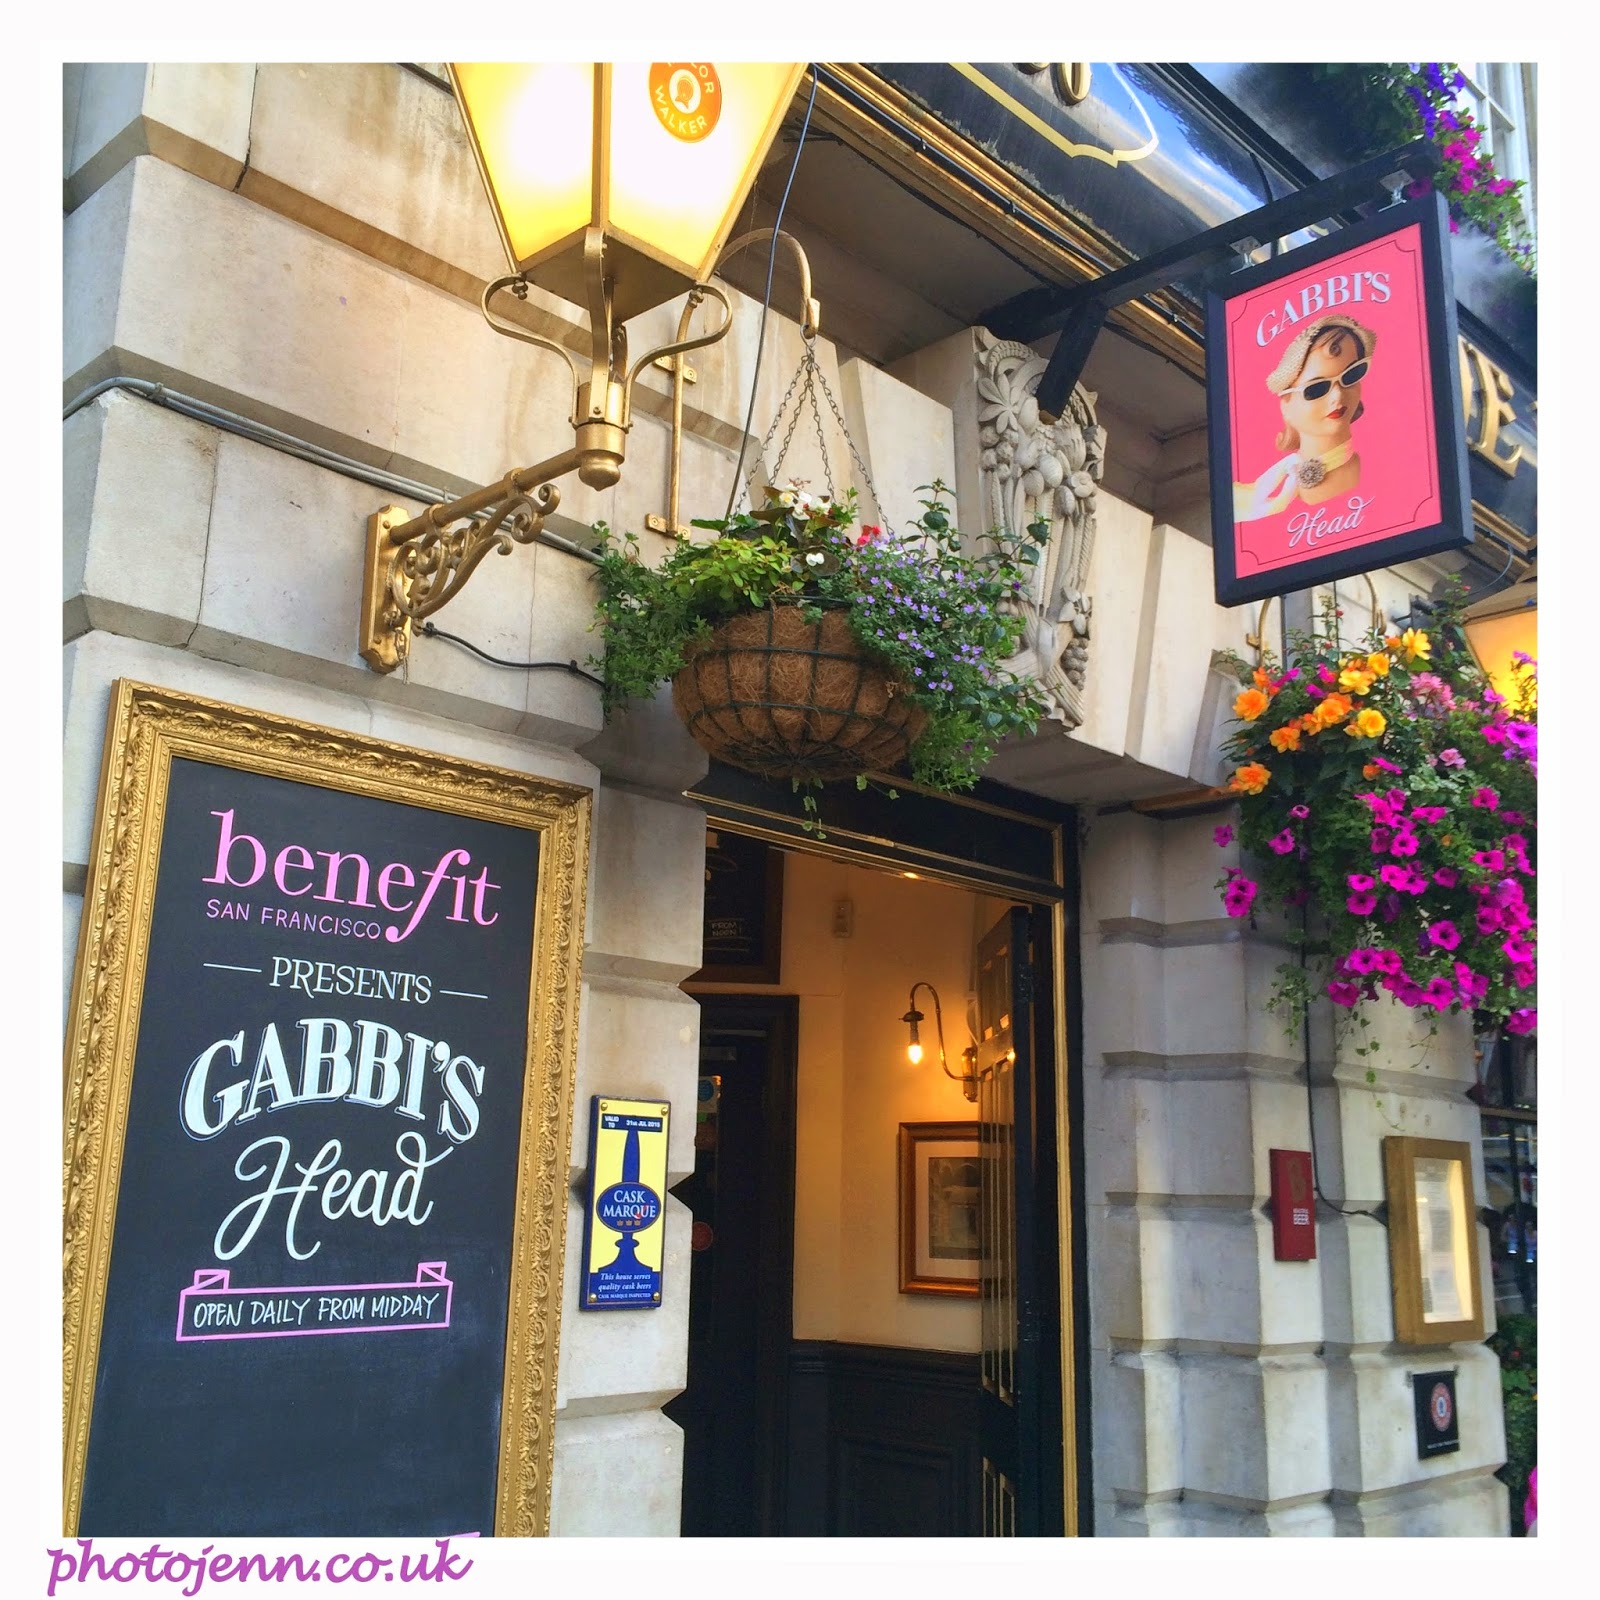 gabbis-head-covent-garden-london-reveiw